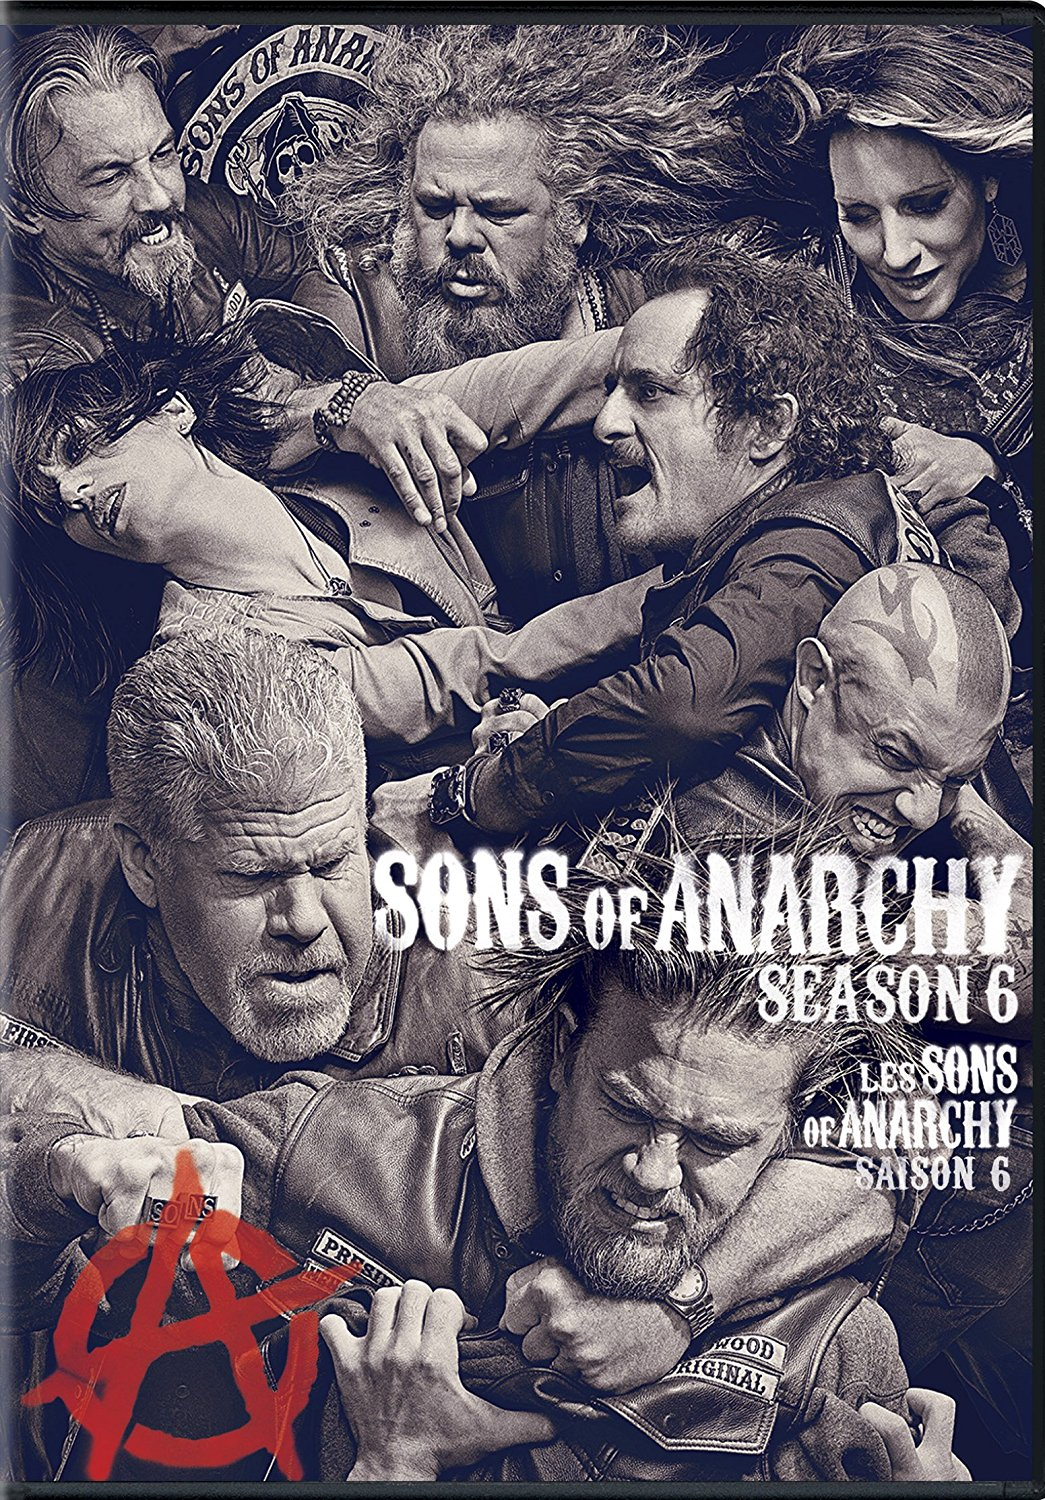 Amazon.com: Watch Sons of Anarchy Season 6 | Prime Video